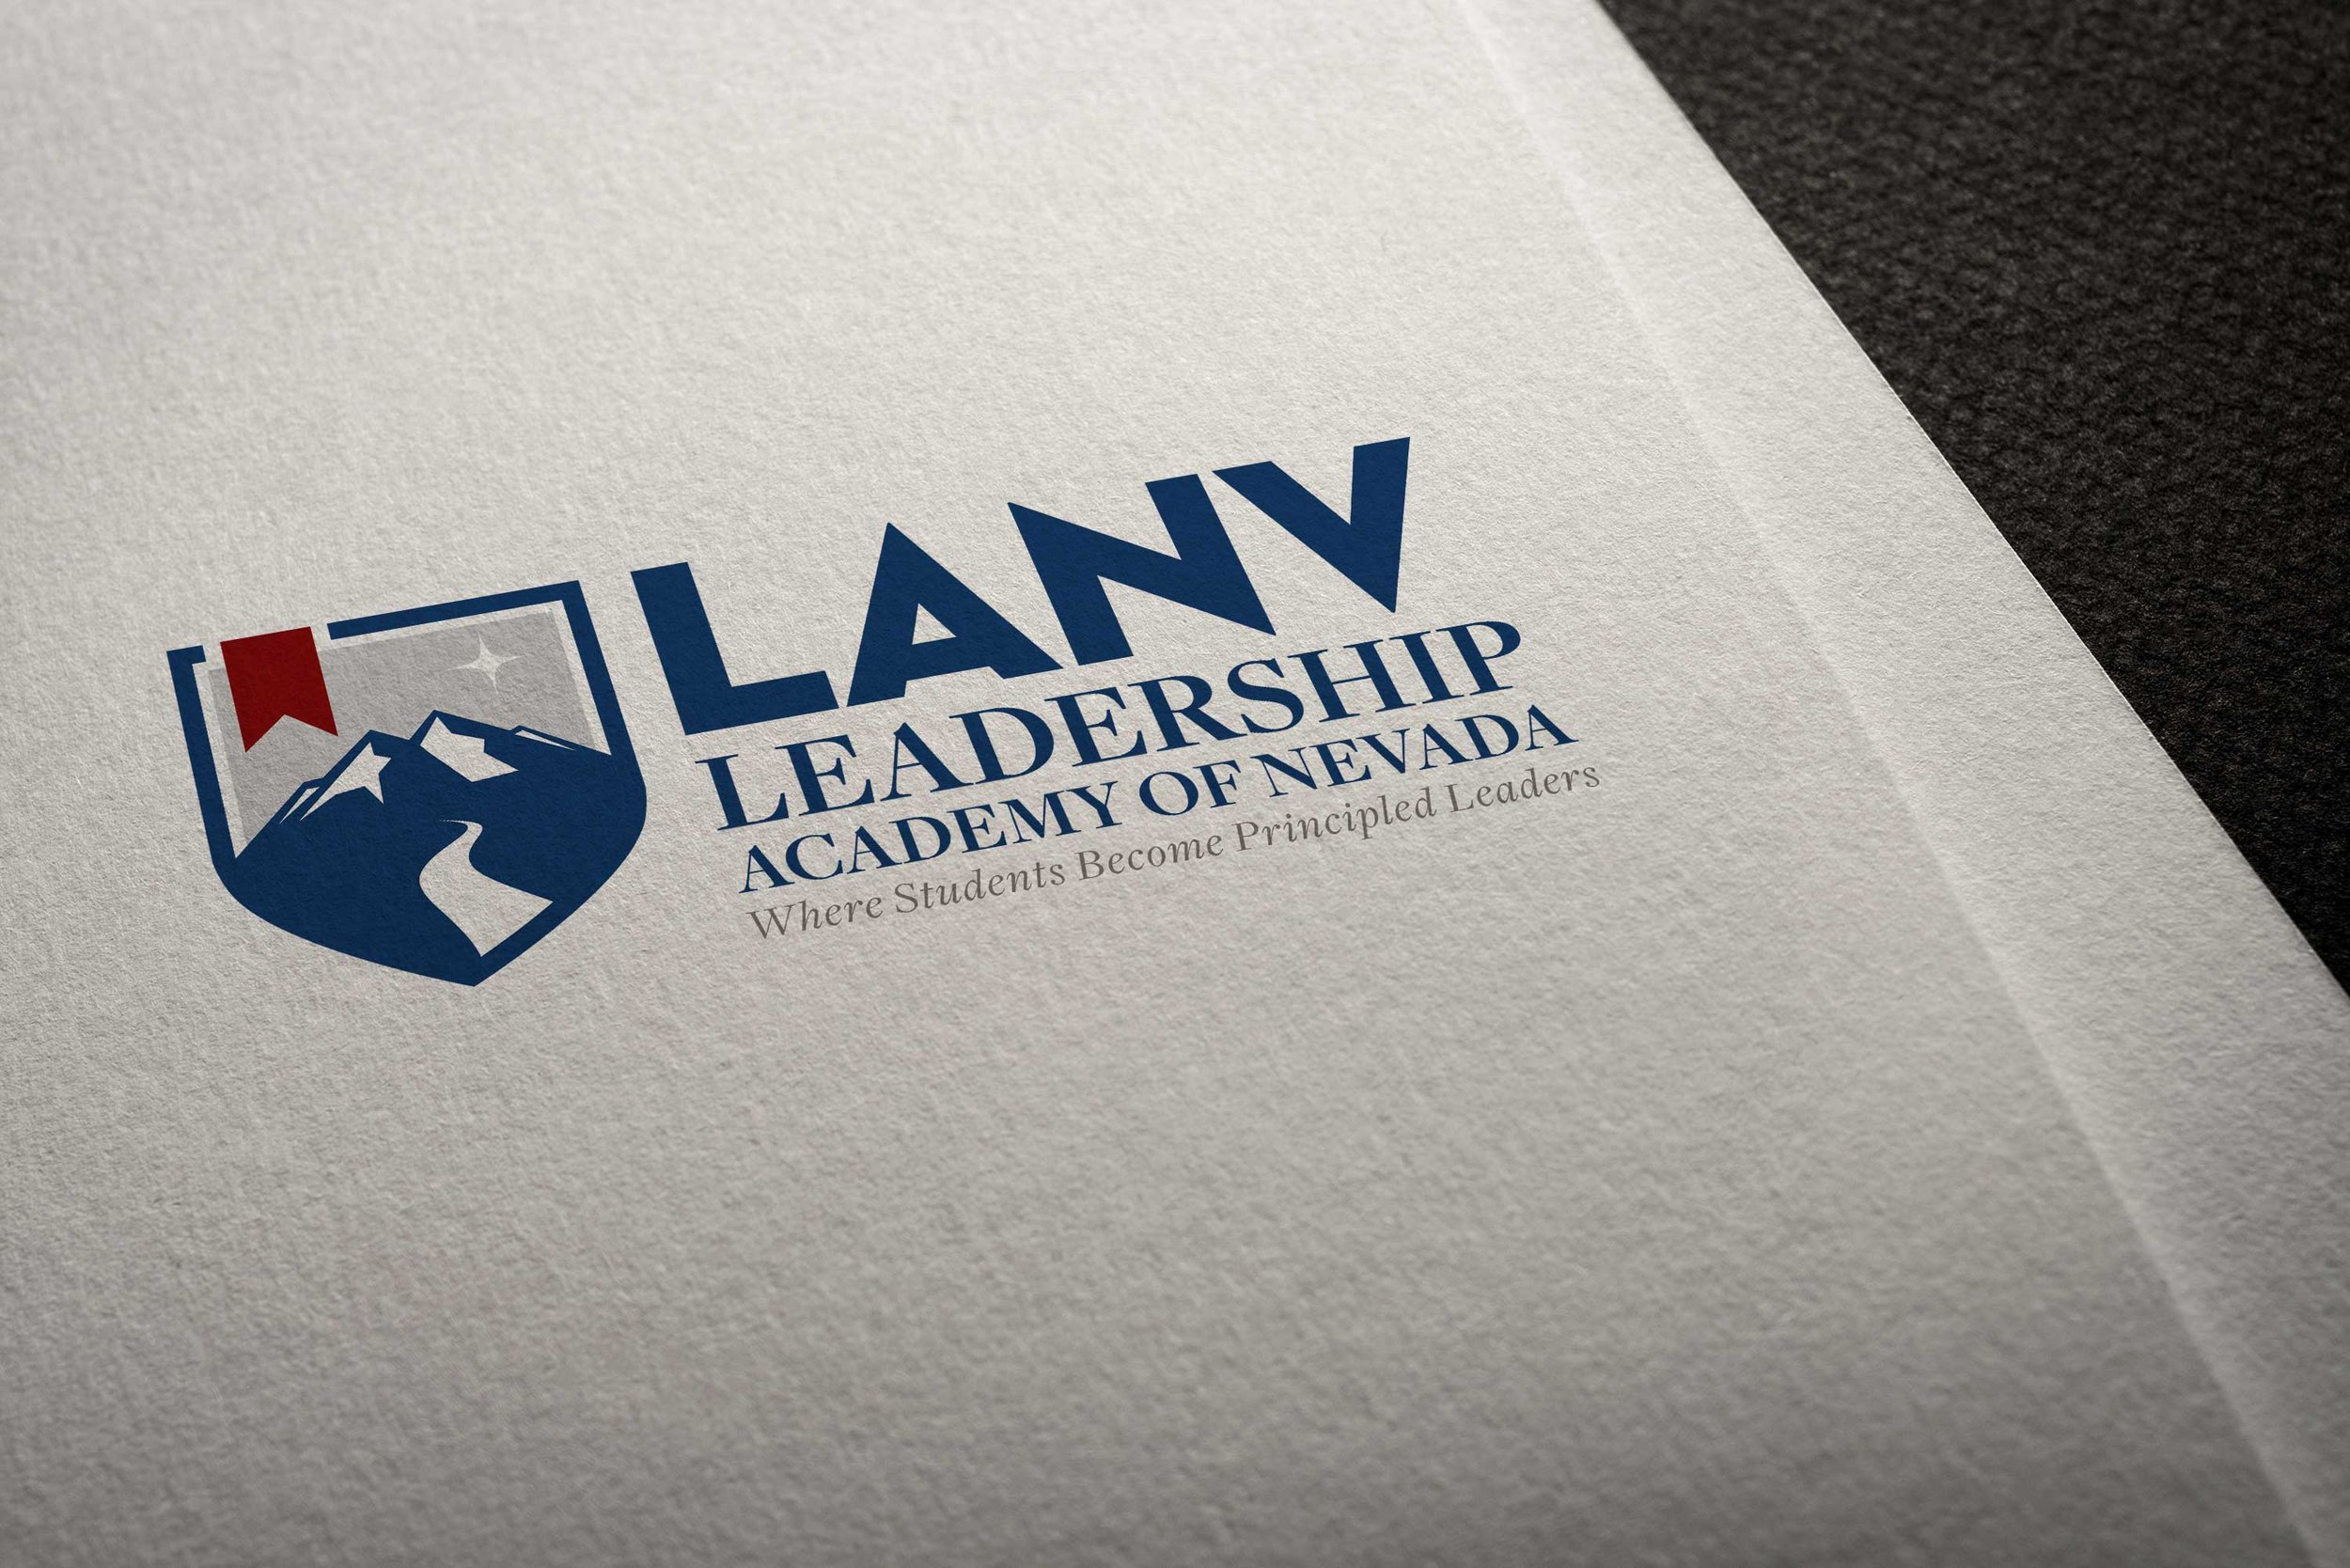 LANV – Leadership Academy of Nevada - Logo Design